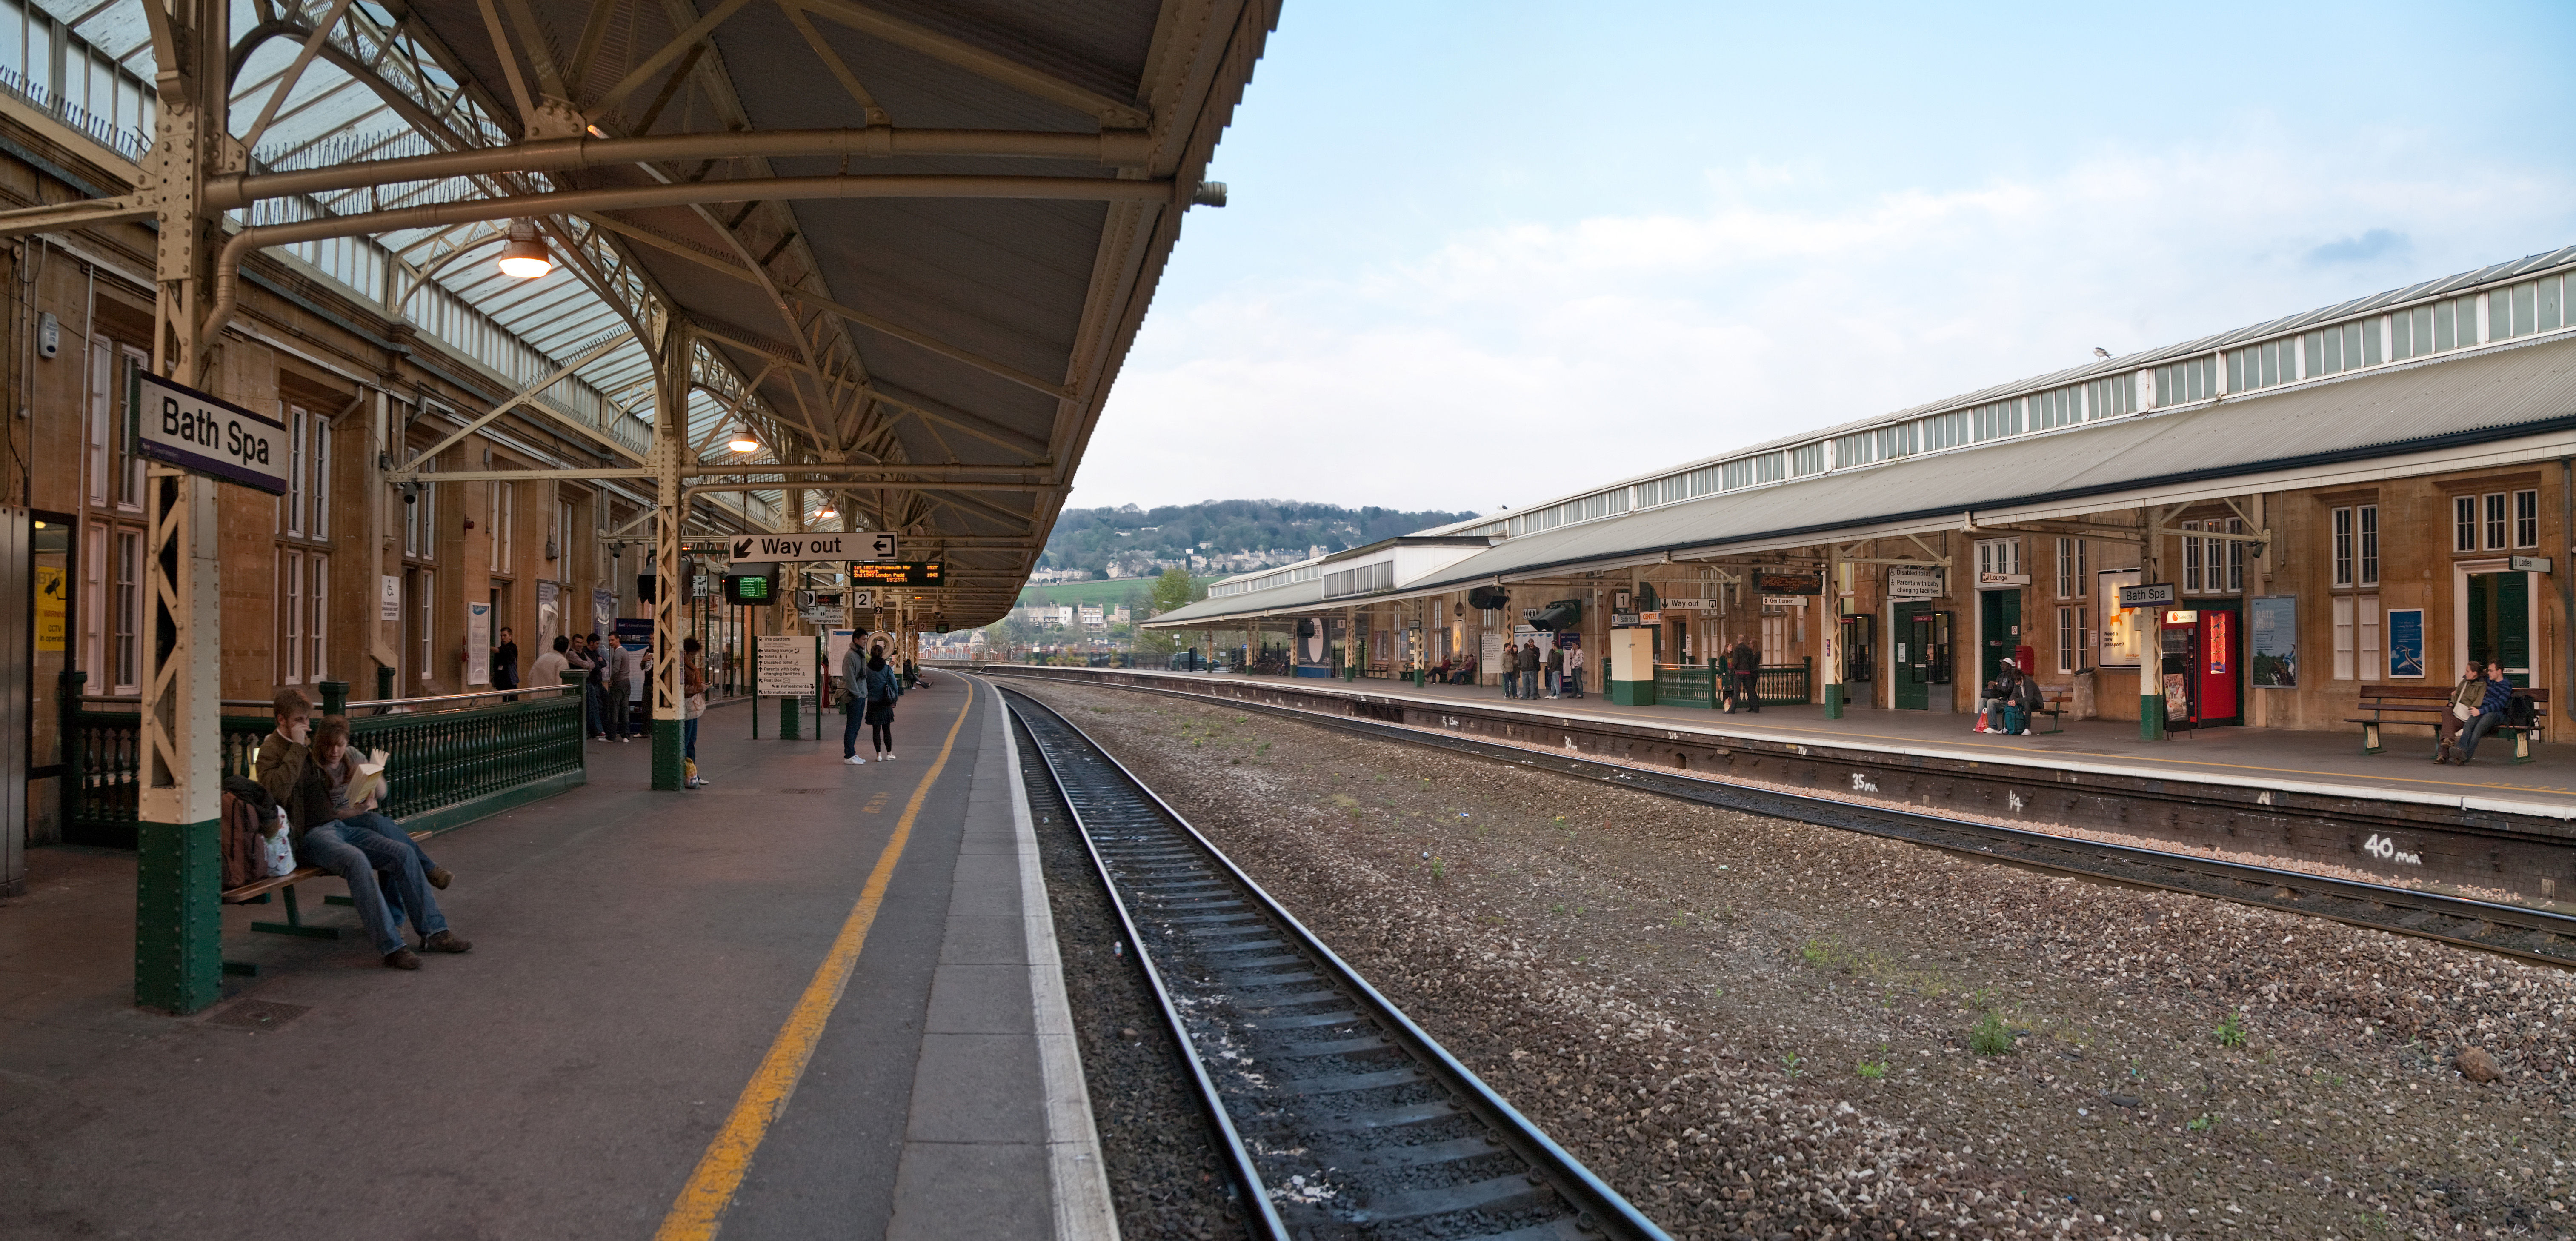 Bath Spa Station To Bristol Temple Meads